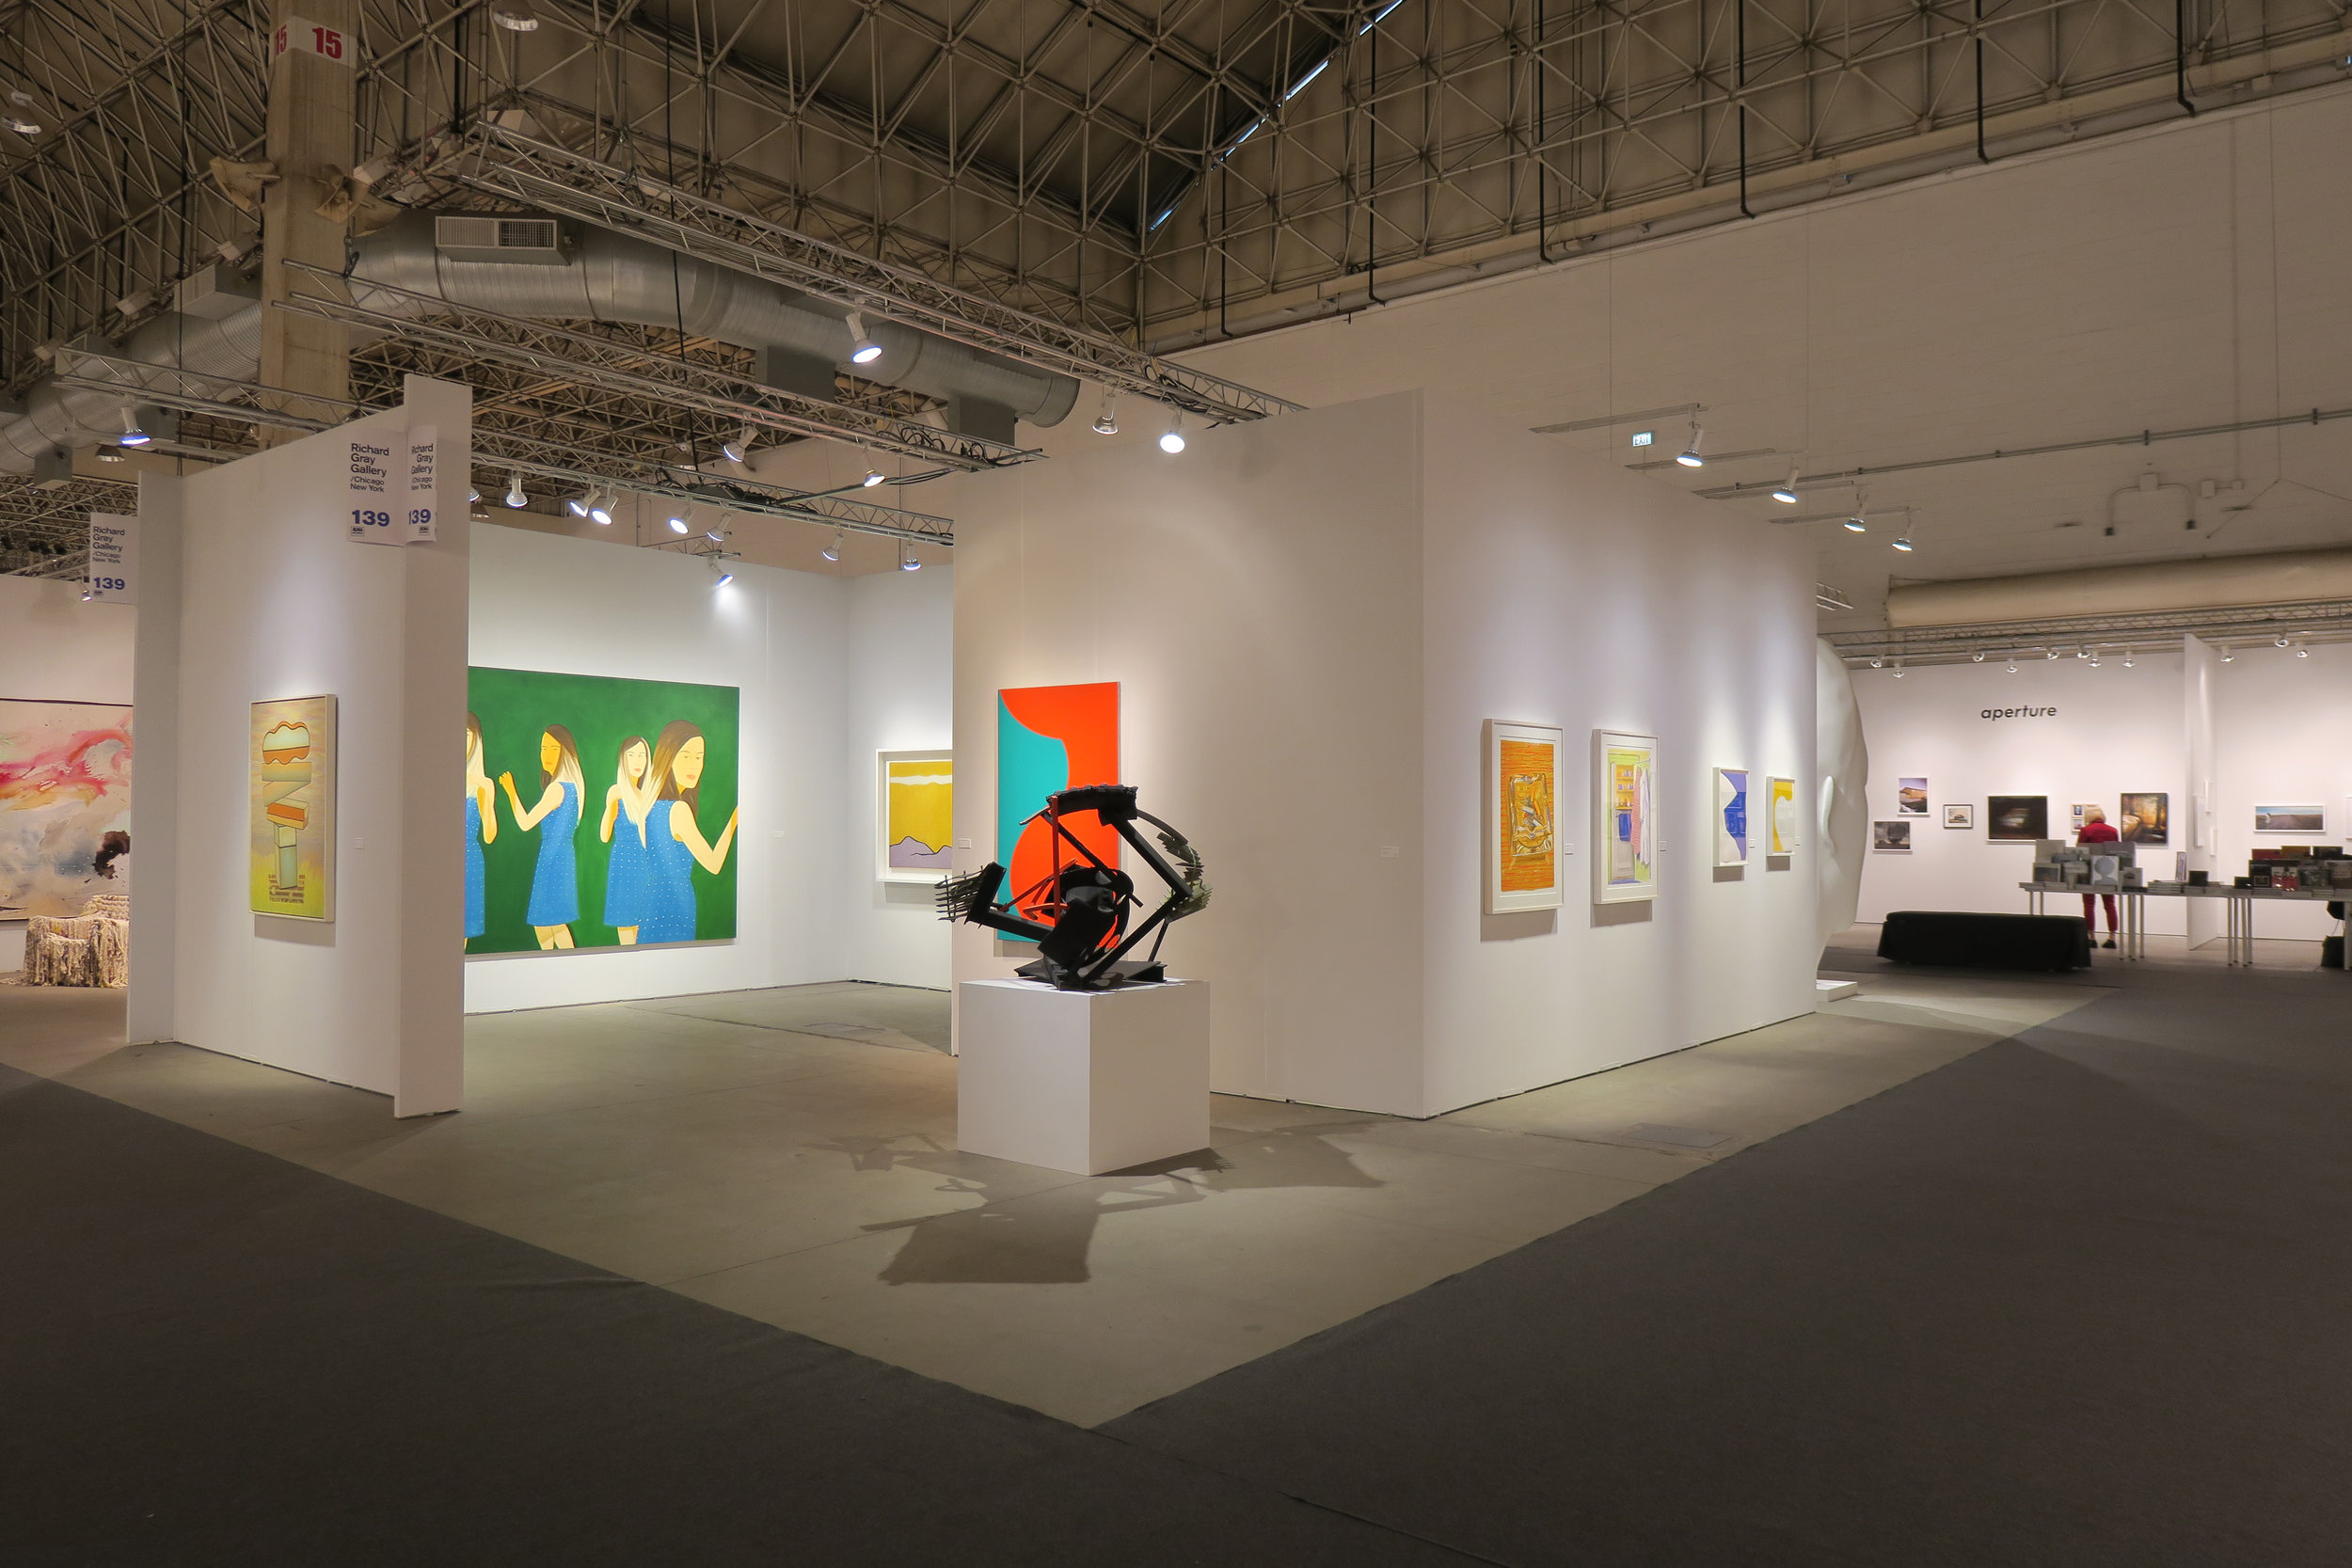 Installation view of Richard Gray Gallery booth at EXPO Chicago, 2018. Image courtesy of Richard Gray Gallery.